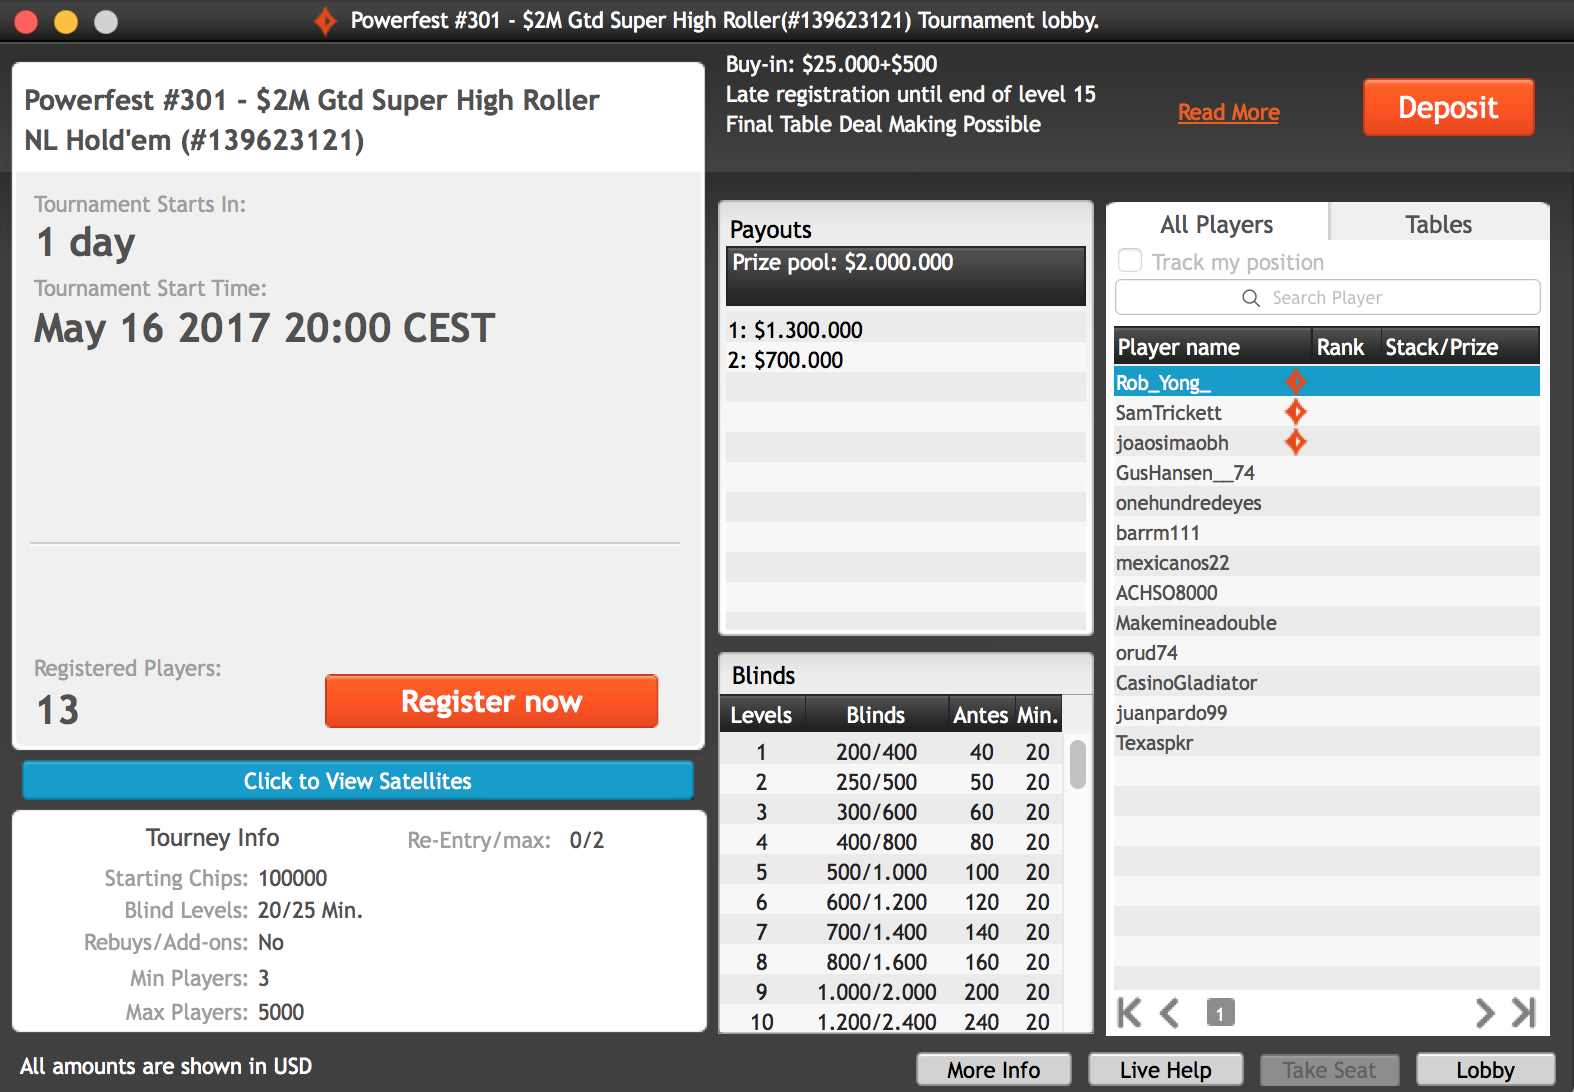 Million Powerfest Super High Roller Targets to Raise 0K for Charity 101